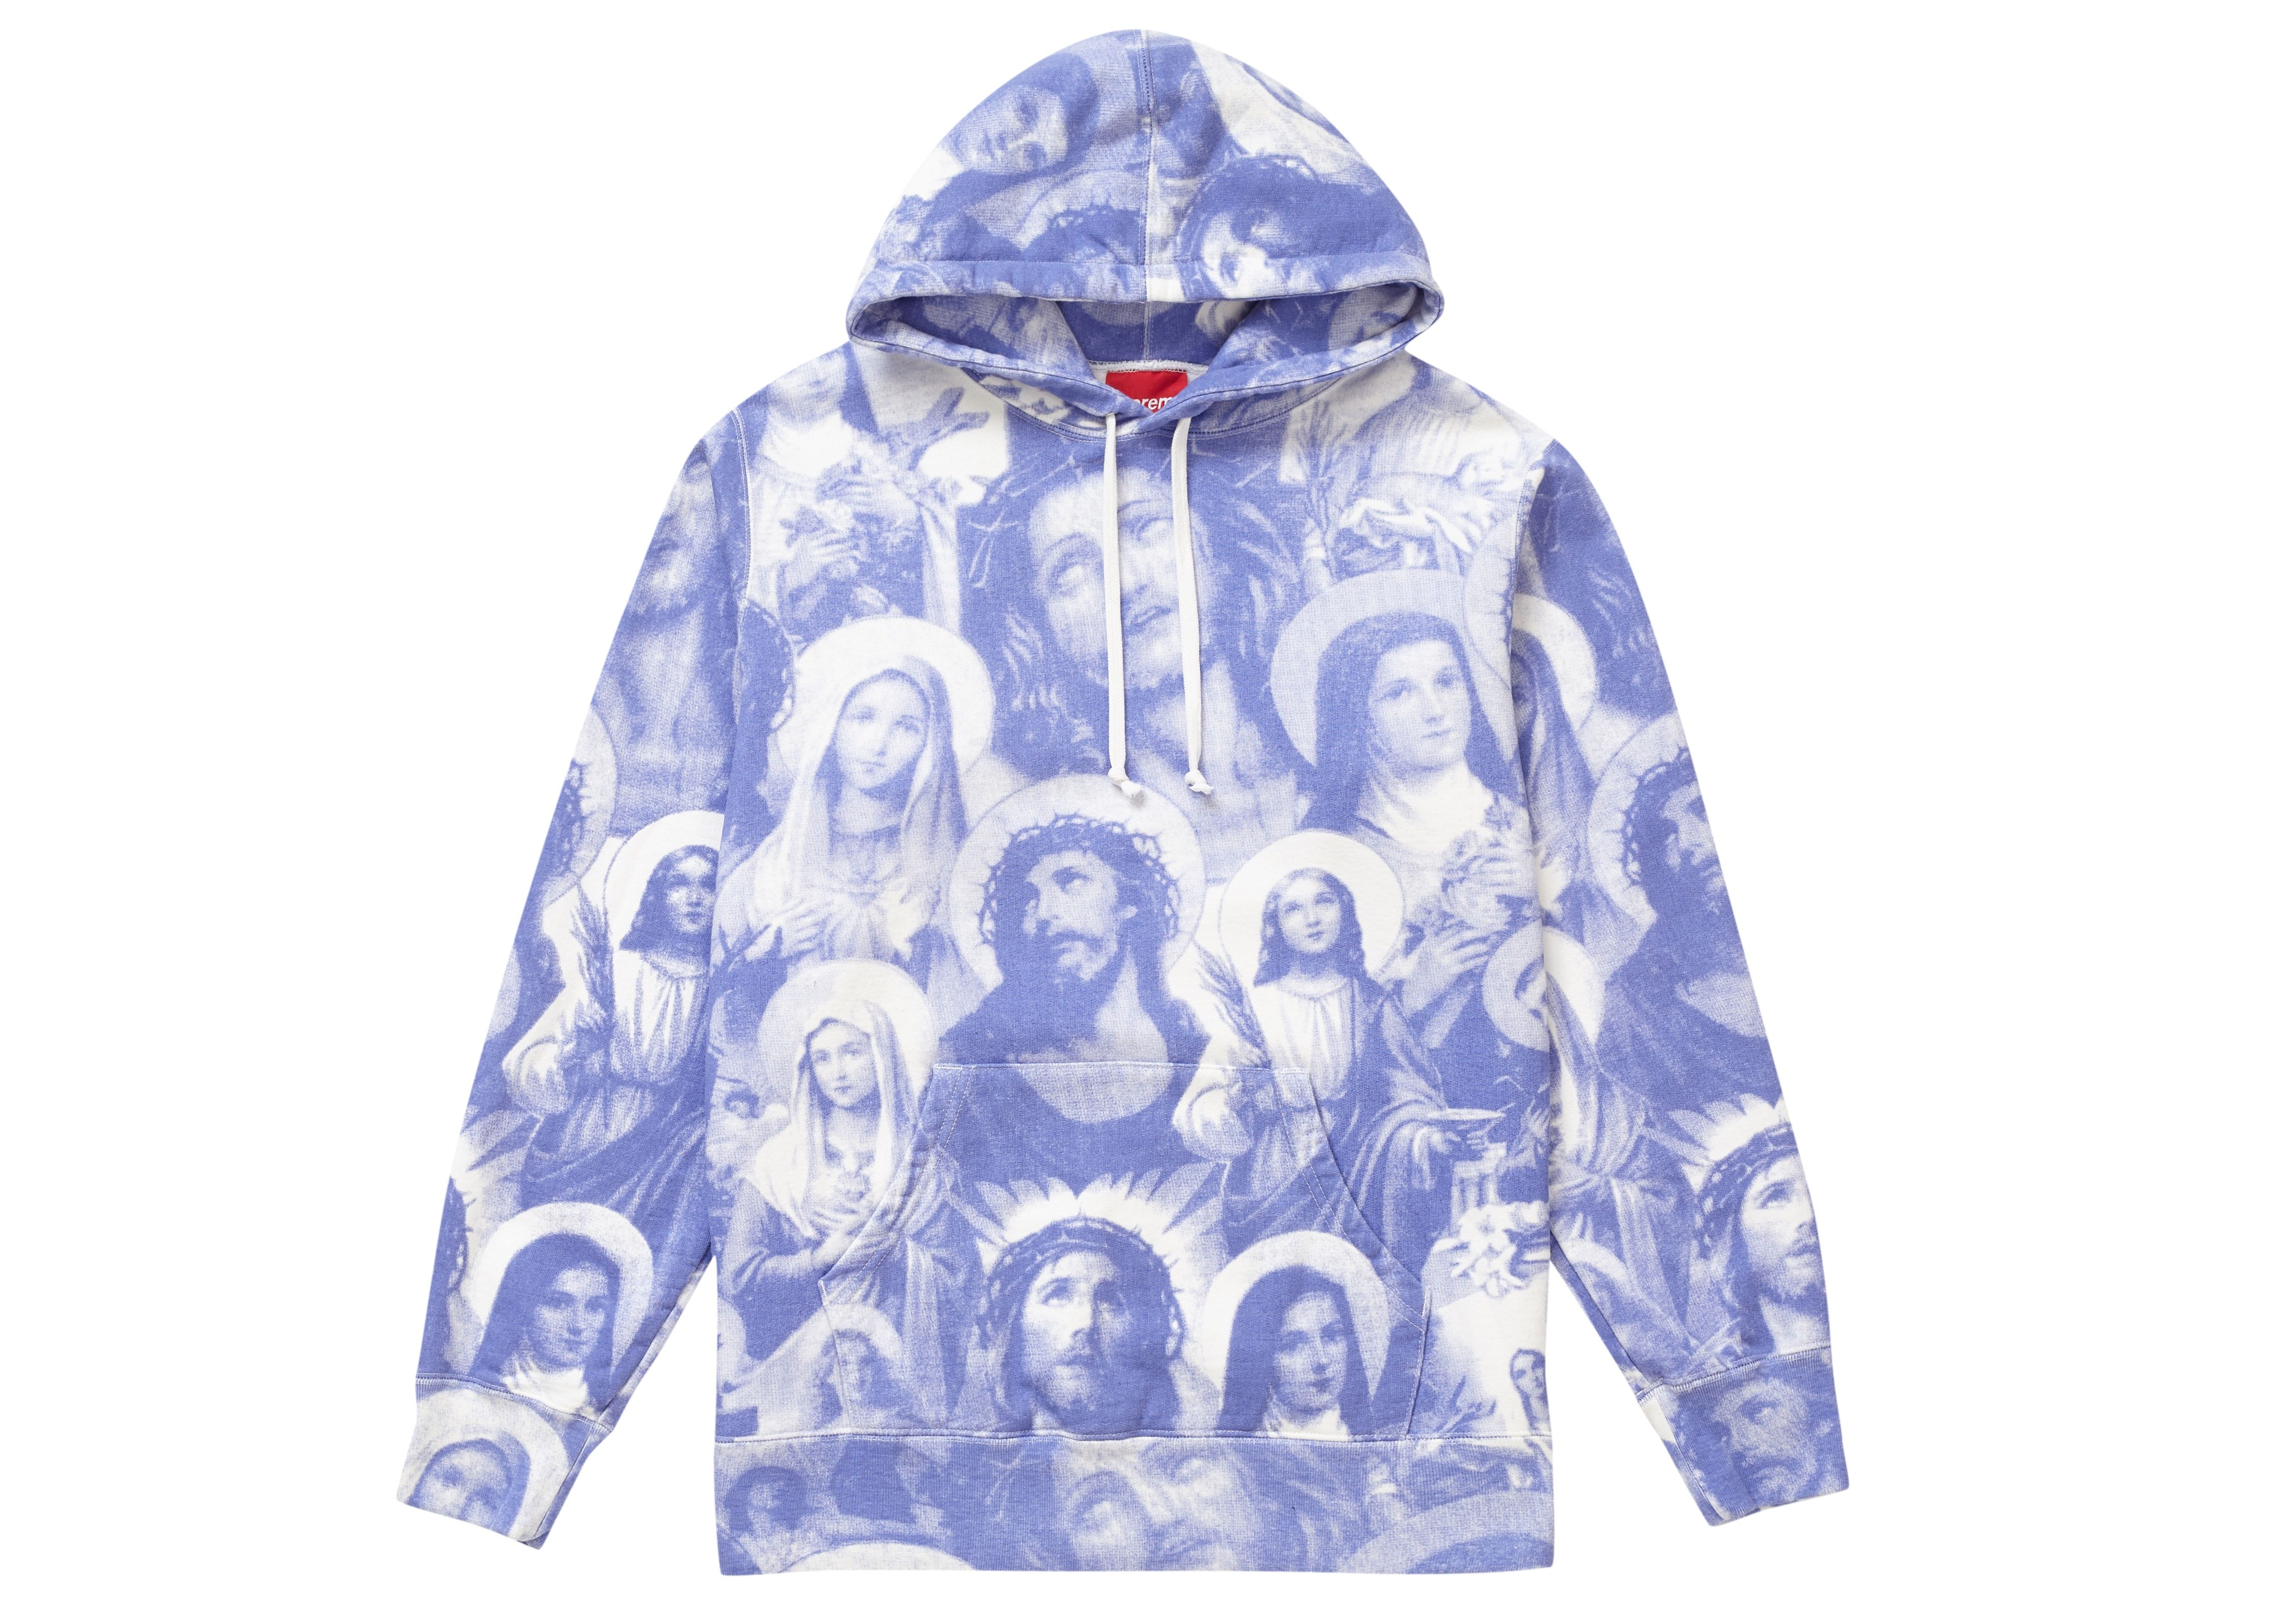 Check Out The Supreme Jesus And Mary Hooded Sweatshirt Purple Available On Stockx Supreme Sweatshirt Hoodies For Sale Hoodies [ 3188 x 4463 Pixel ]